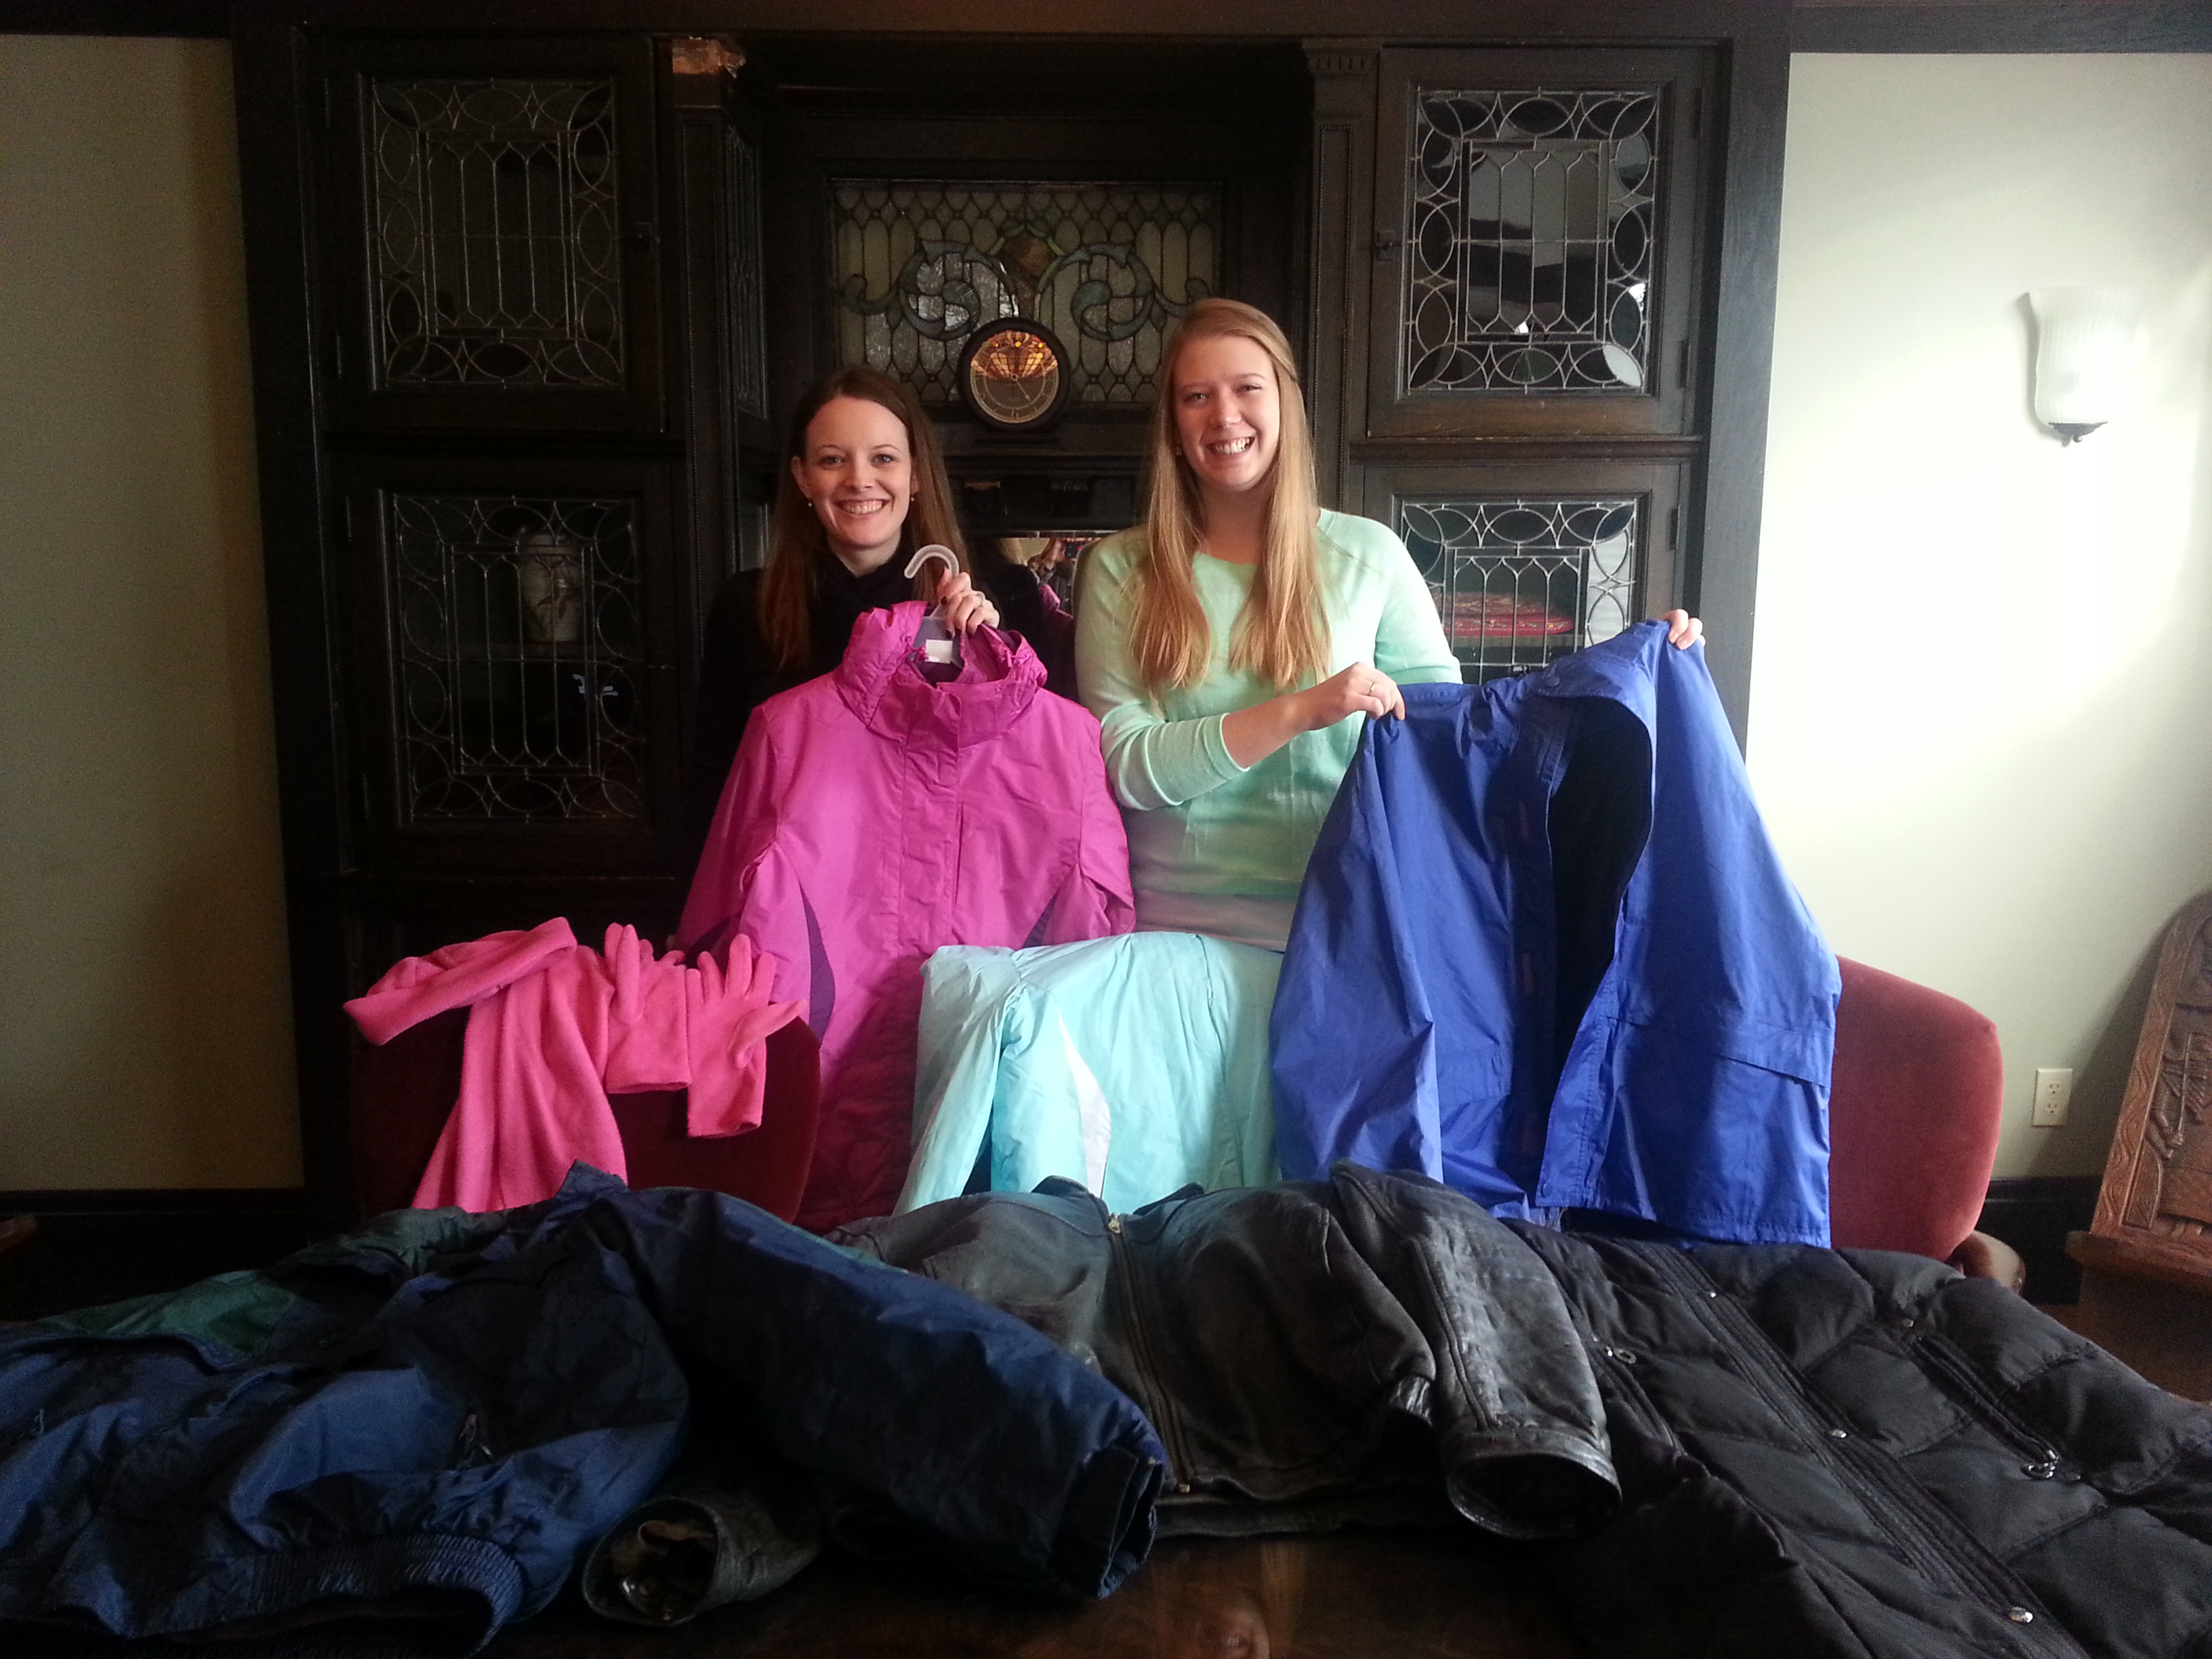 CVT staff Casie and Emily with coats donated by Kroll Ontrack